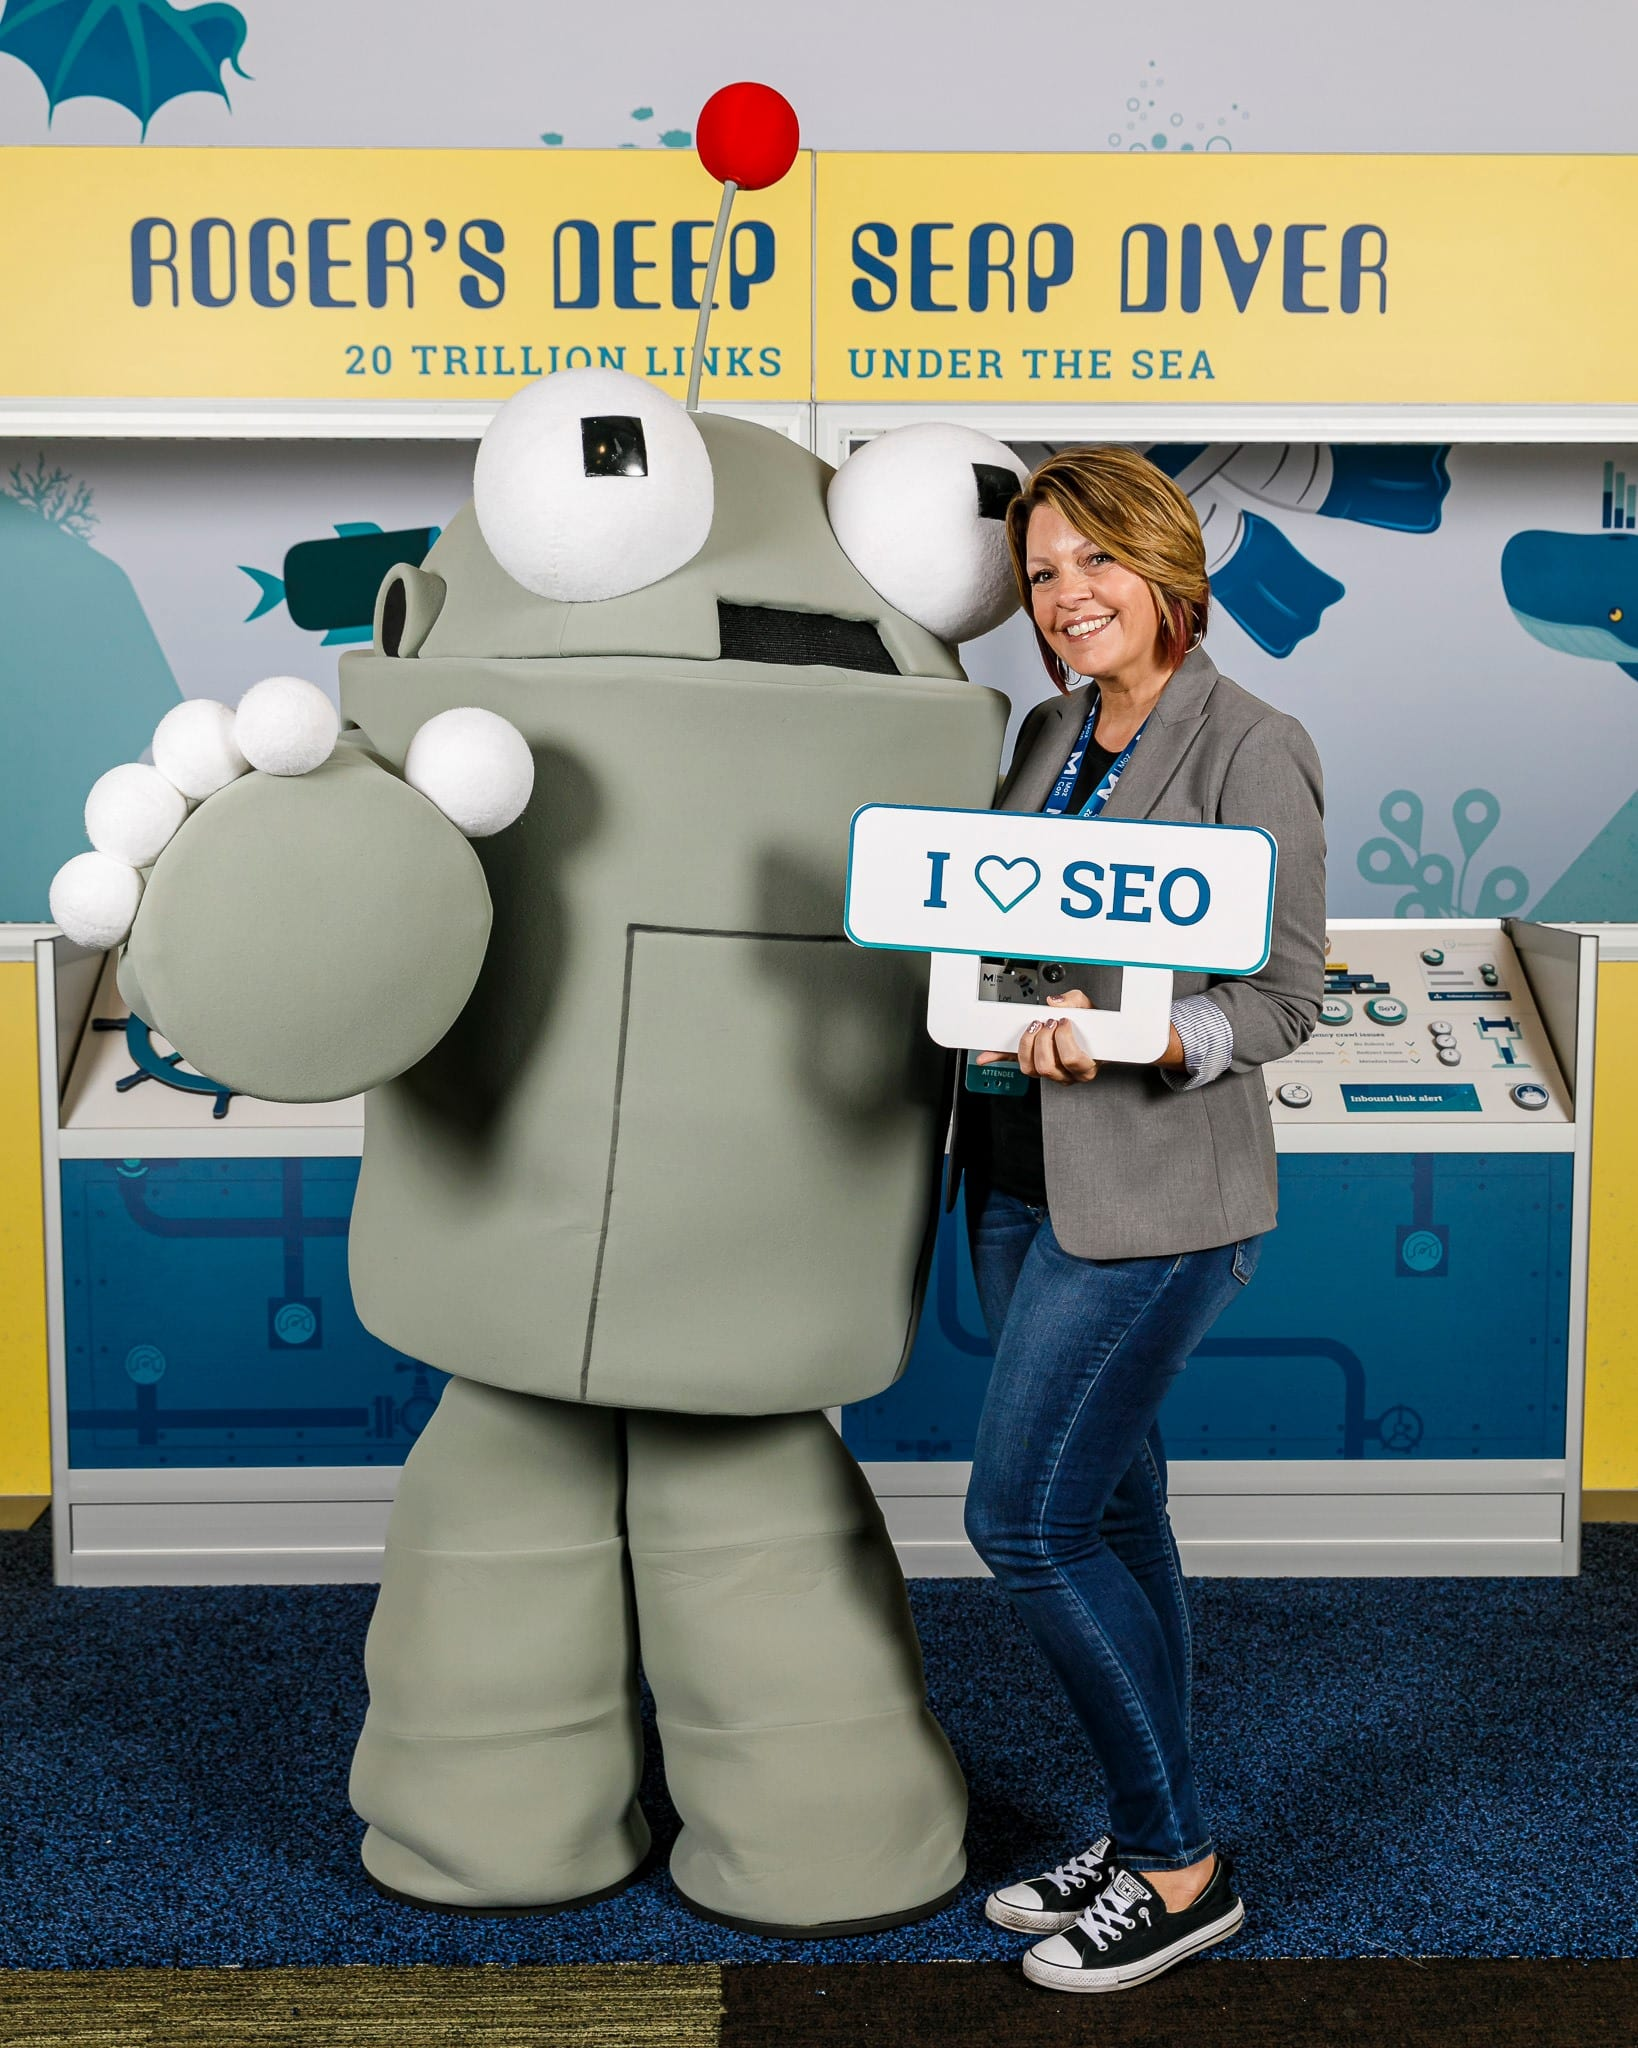 Lori Ballen Realtor, Digital Marketing Strategist, Affiliate Marketer, Speaker/Trainer stands next to Roger, the Moz Mascot. Lori was attending the Mozcon convention in Seattle and she is holding an I love SEO sign